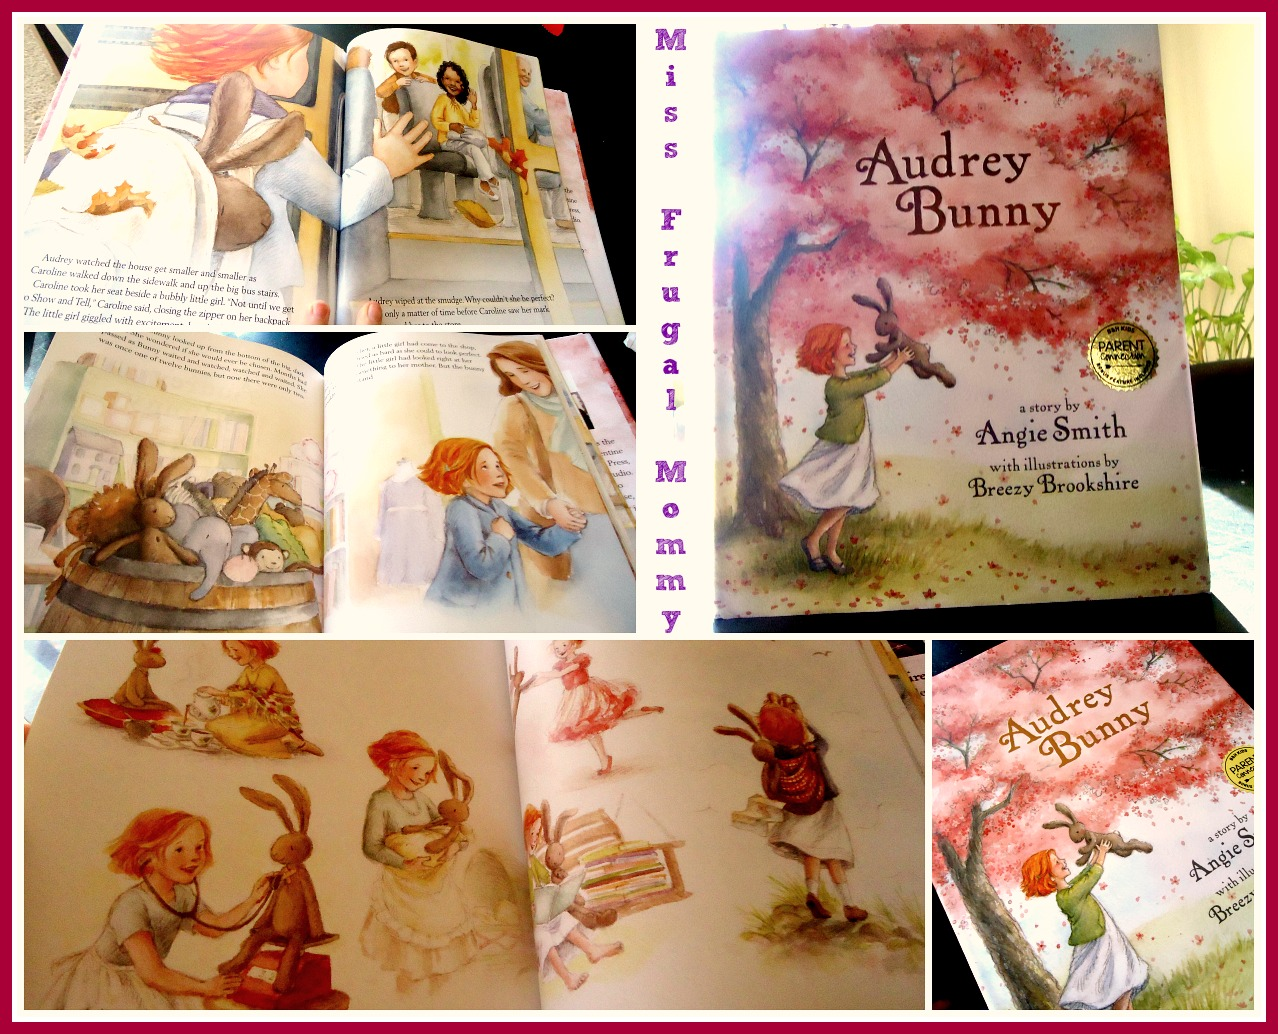 Audrey Bunny Book Review & Giveaway